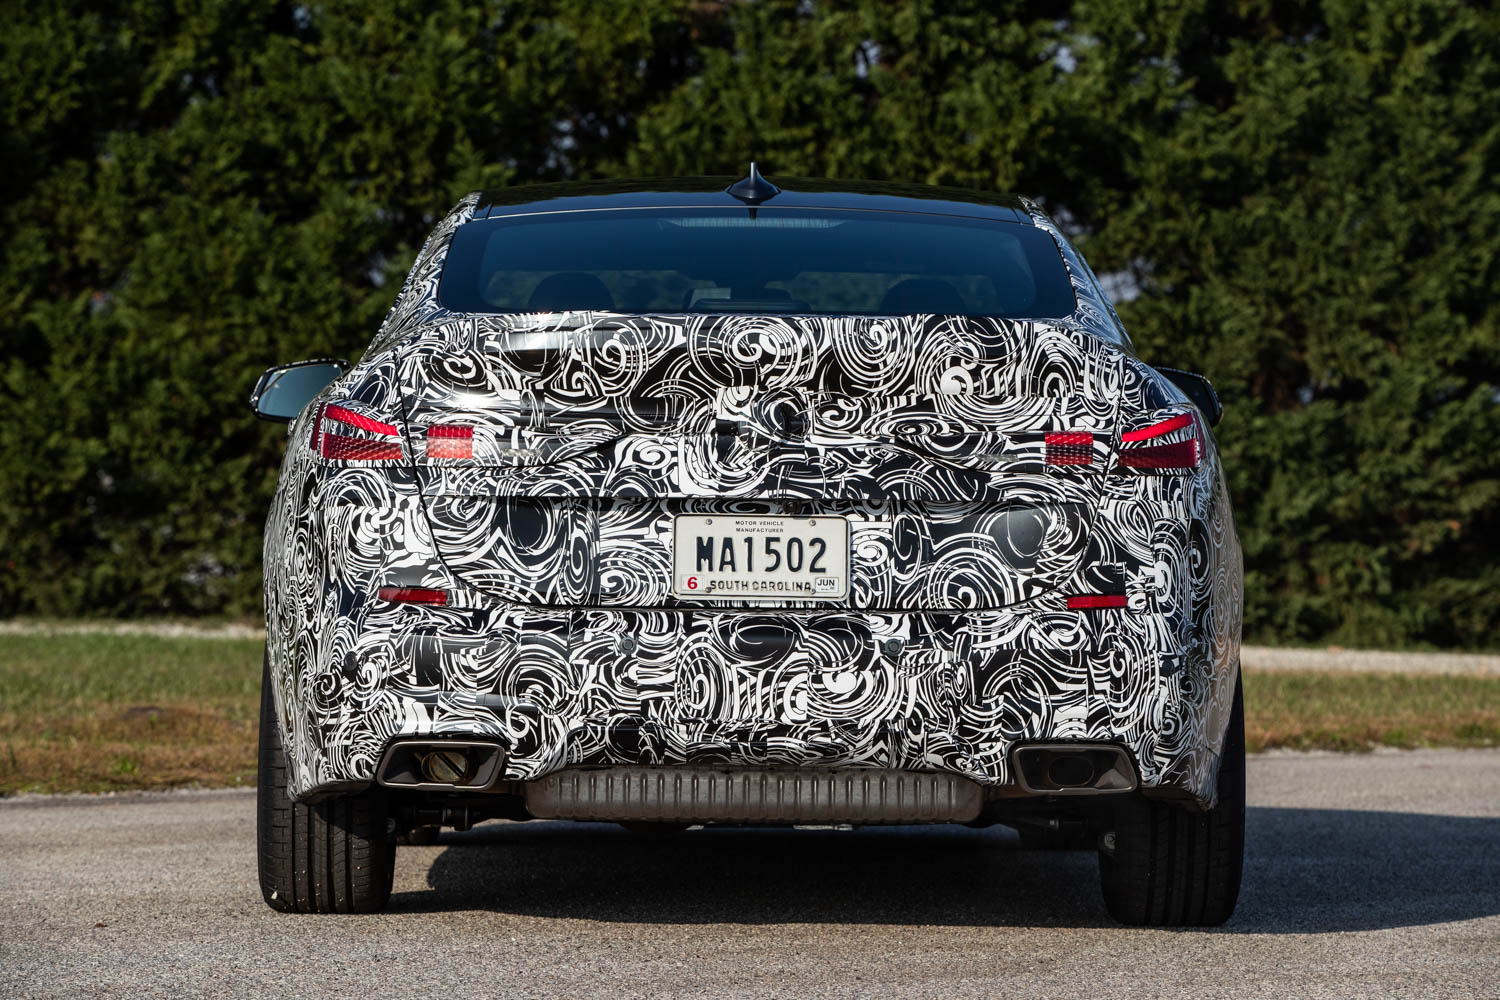 BMW M235i xDrive Prototype rear